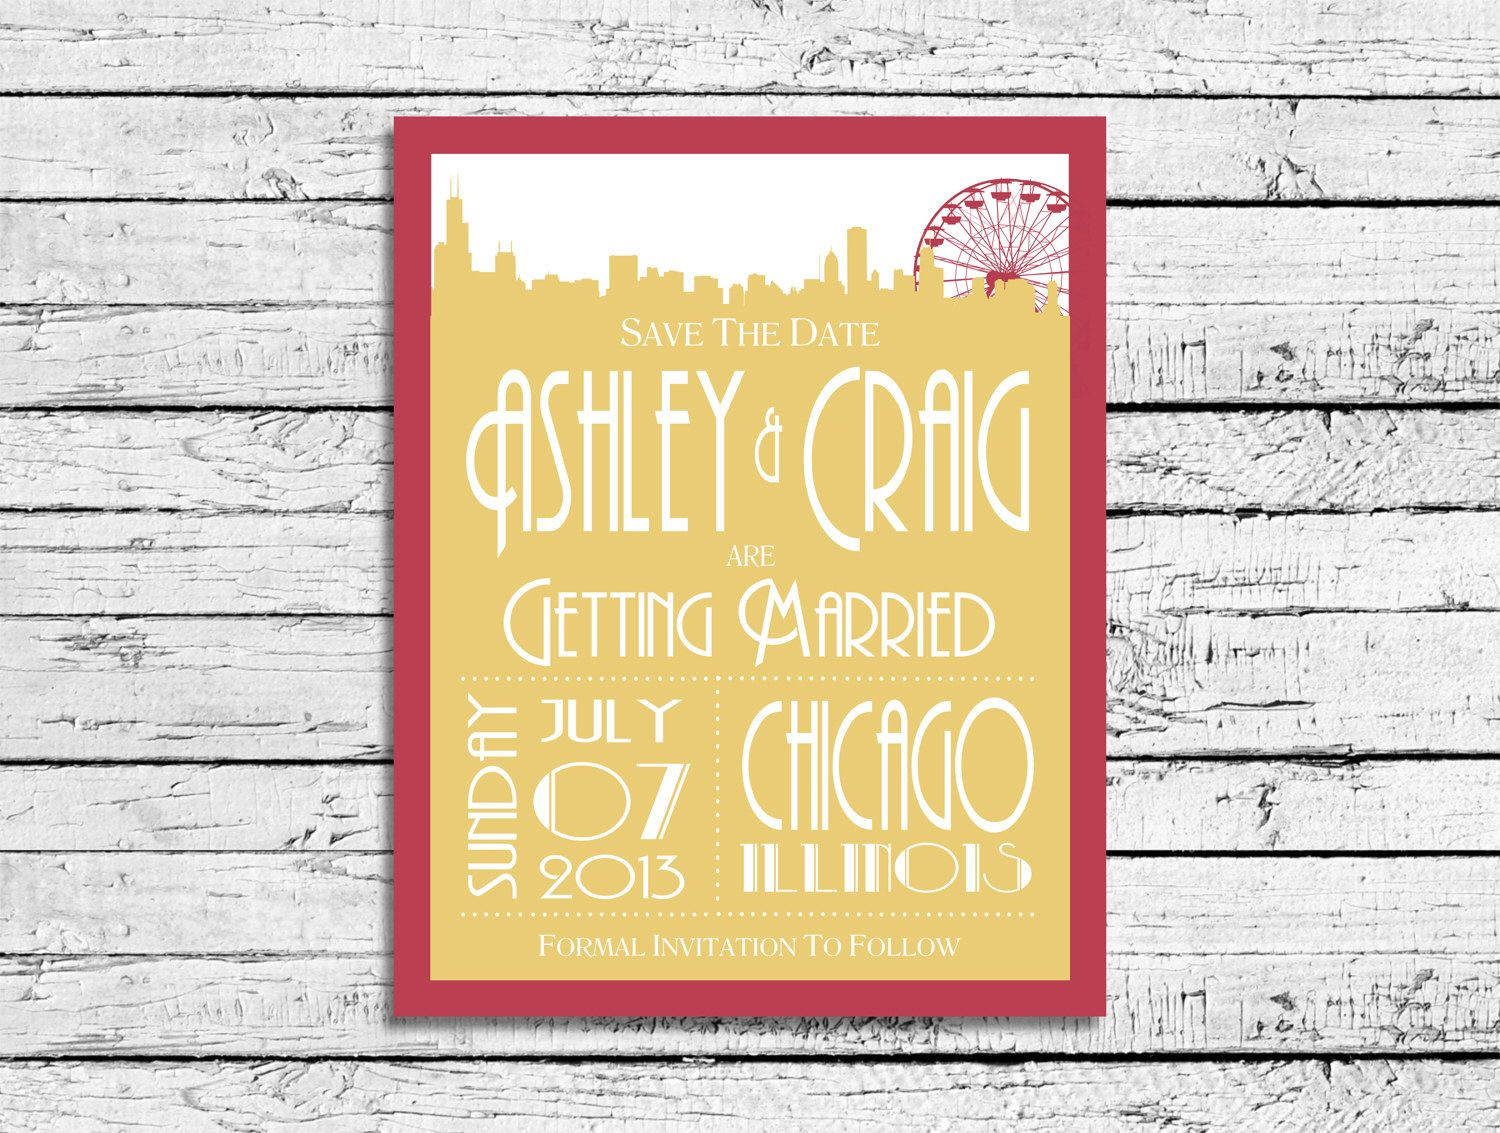 Save The Dates - Chicago Skyline with Ferris Wheel